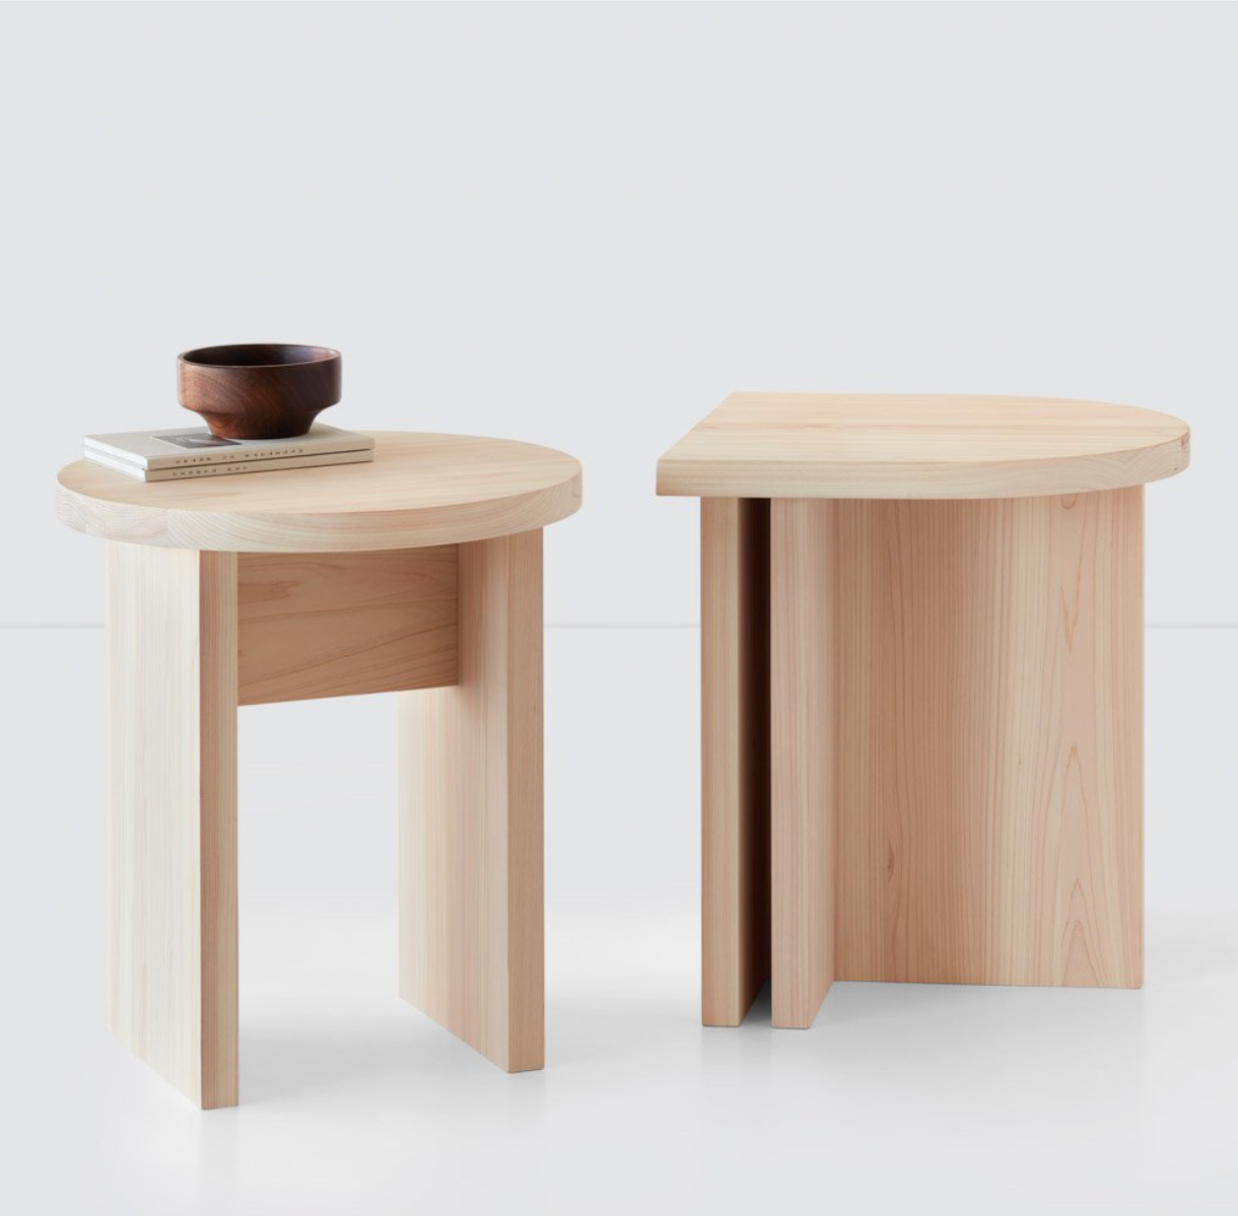 A Natural Coffee Table: 12 Eco-Friendly Choices